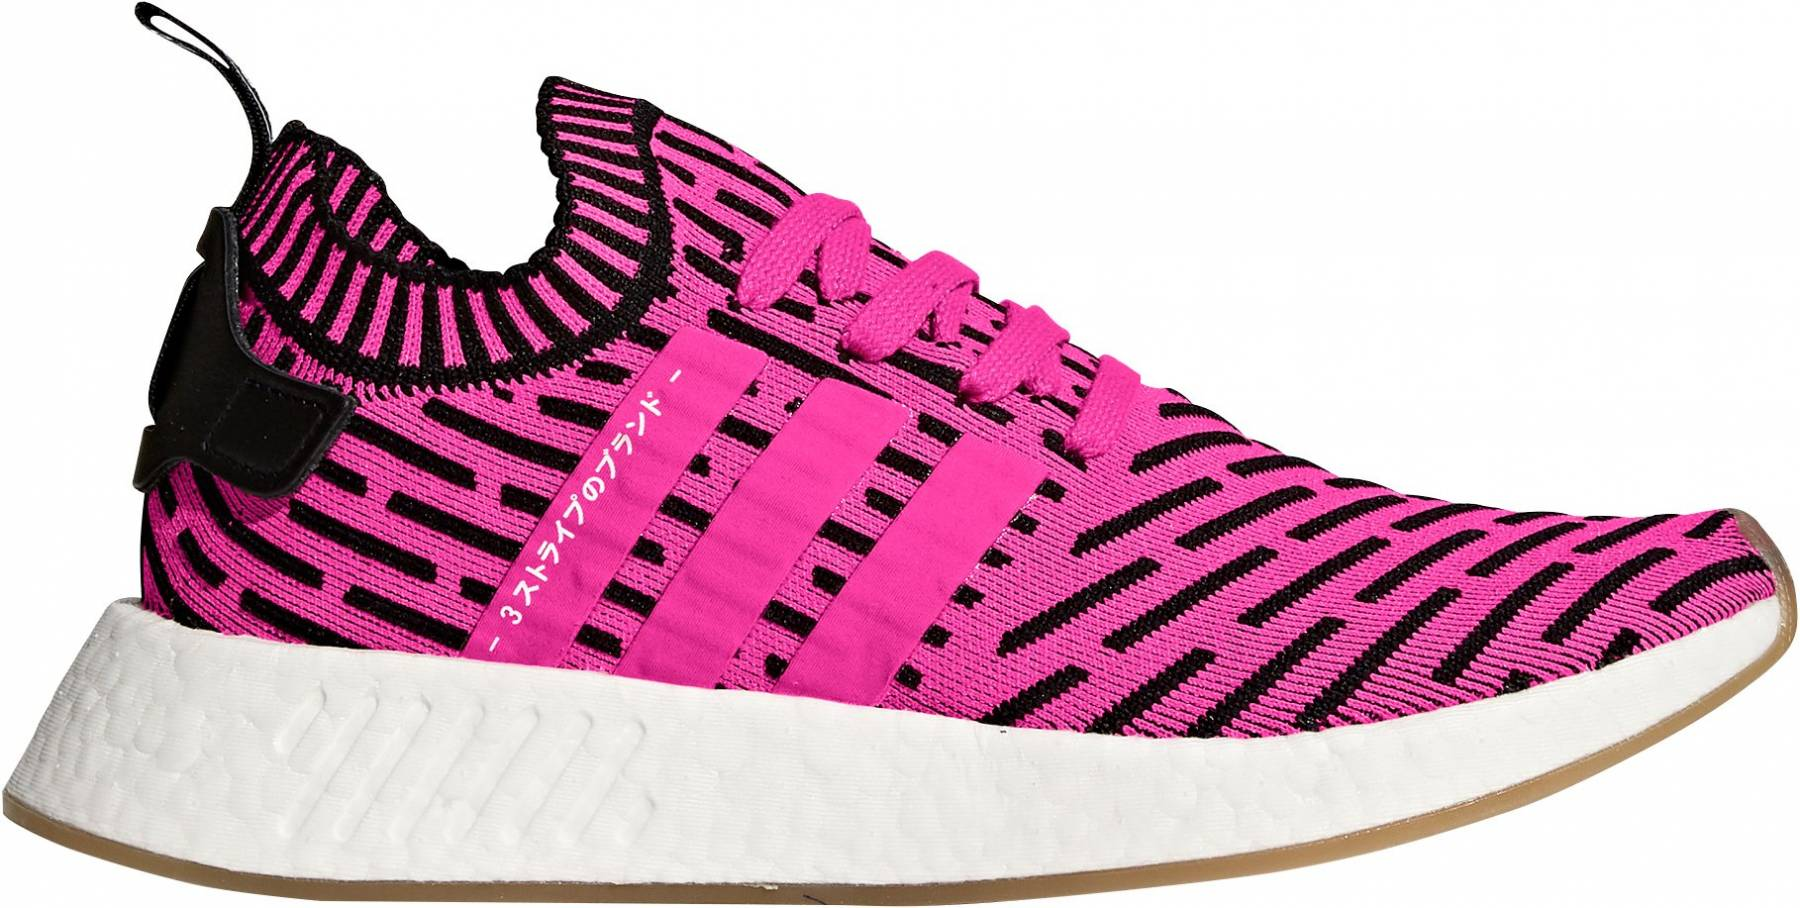 Save 44% on Pink Adidas Sneakers (26